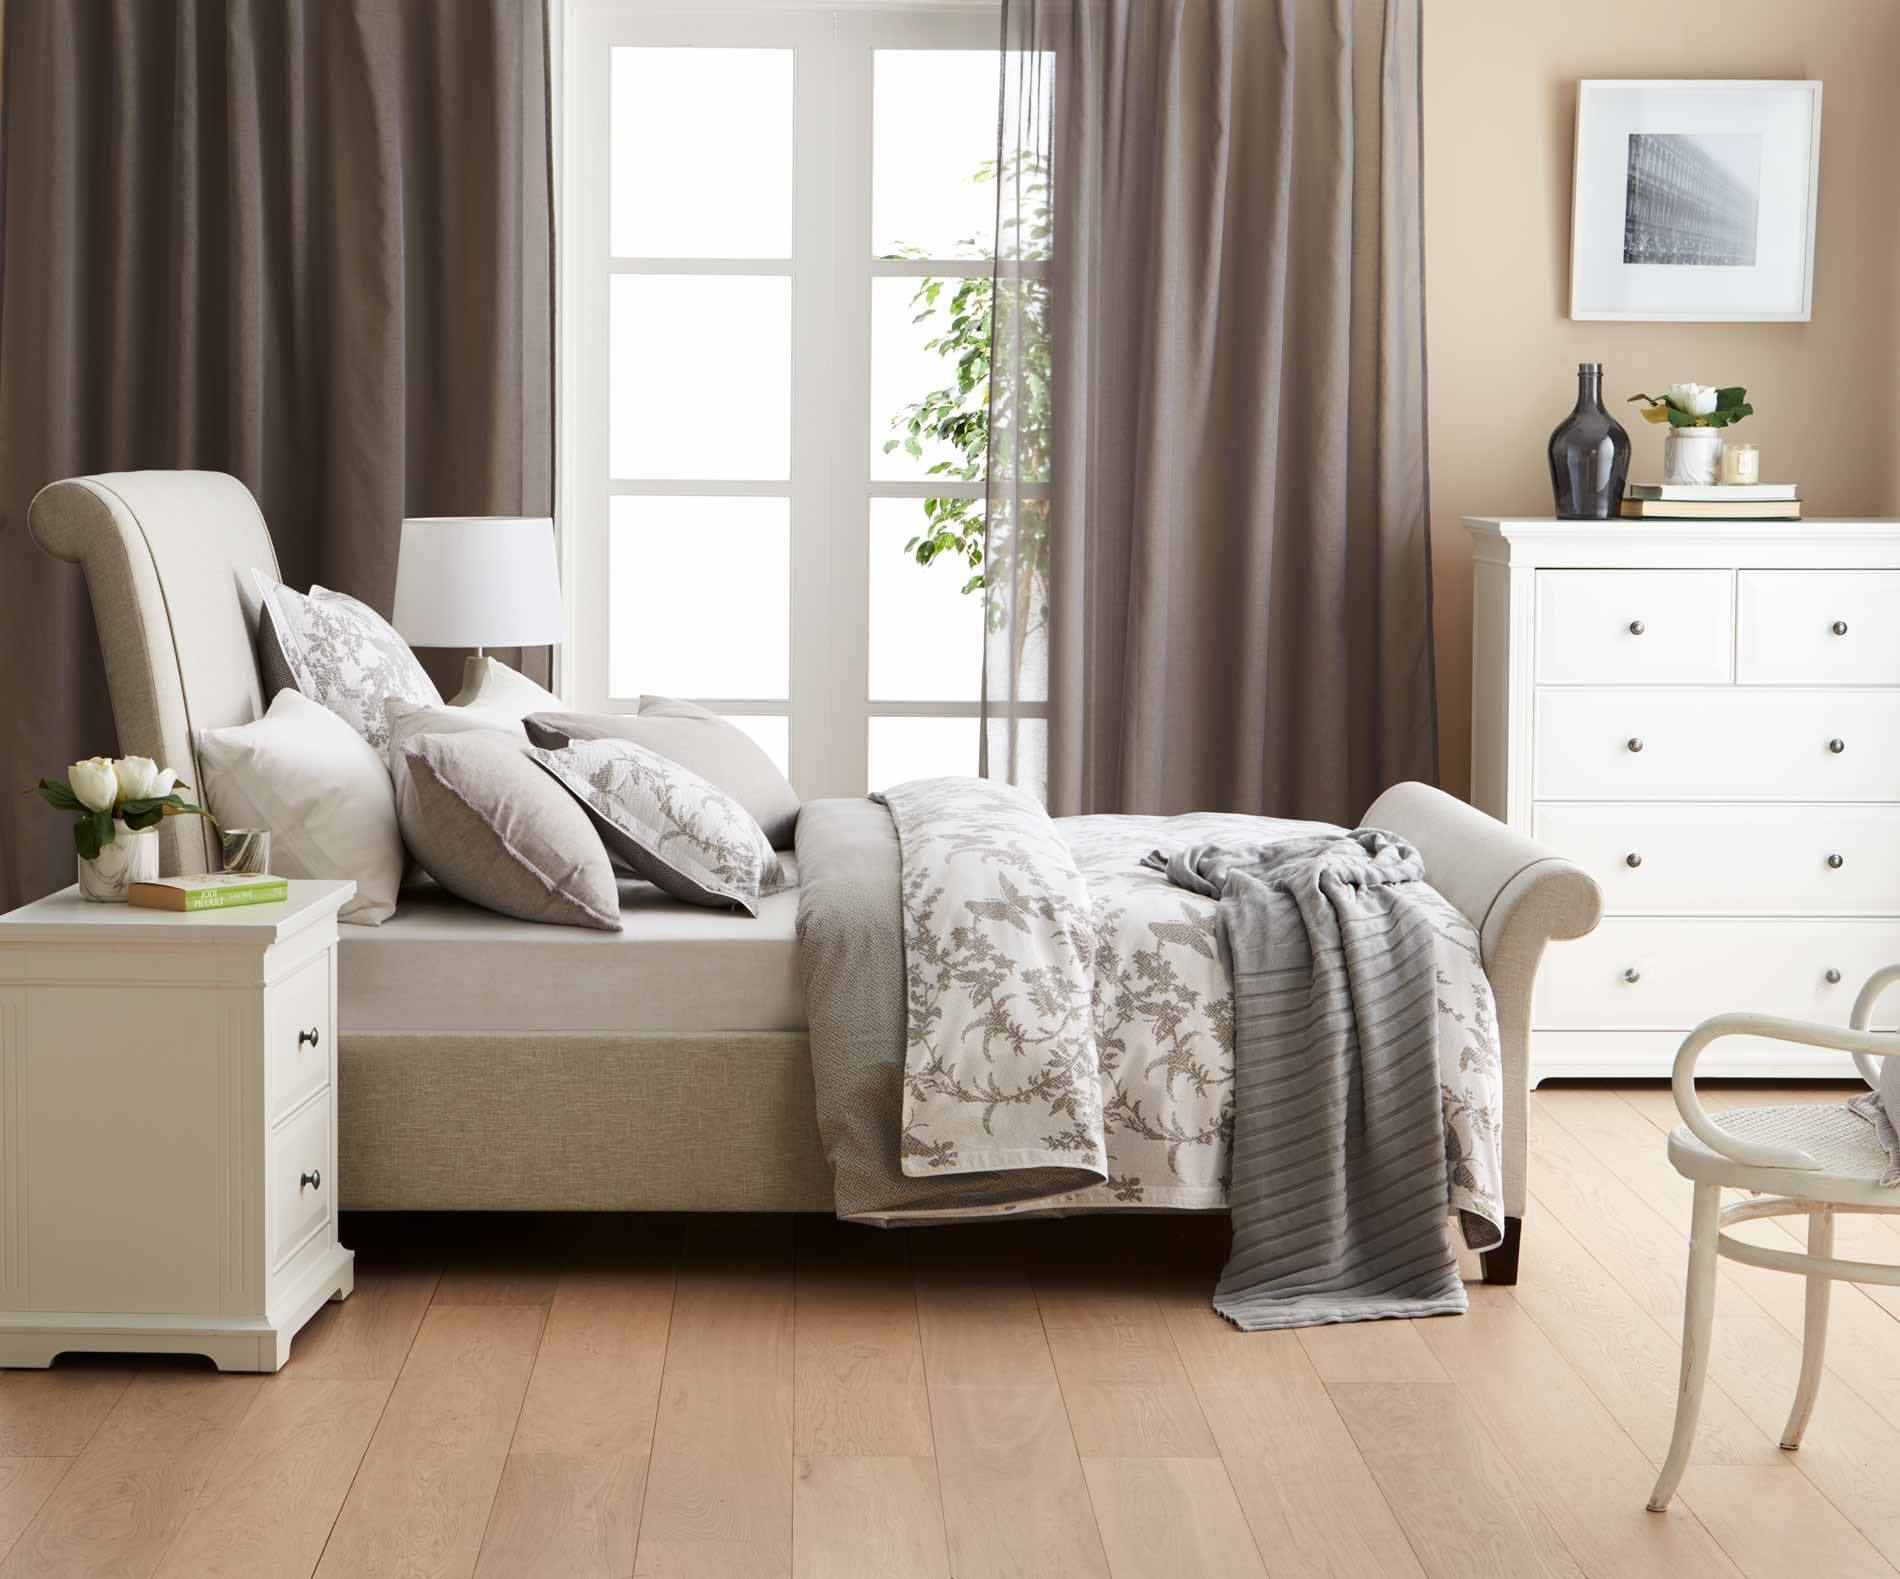 Forty Winks – Natural Talalay Latex Mattress And Latex Pillow Store In Mornington Victoria